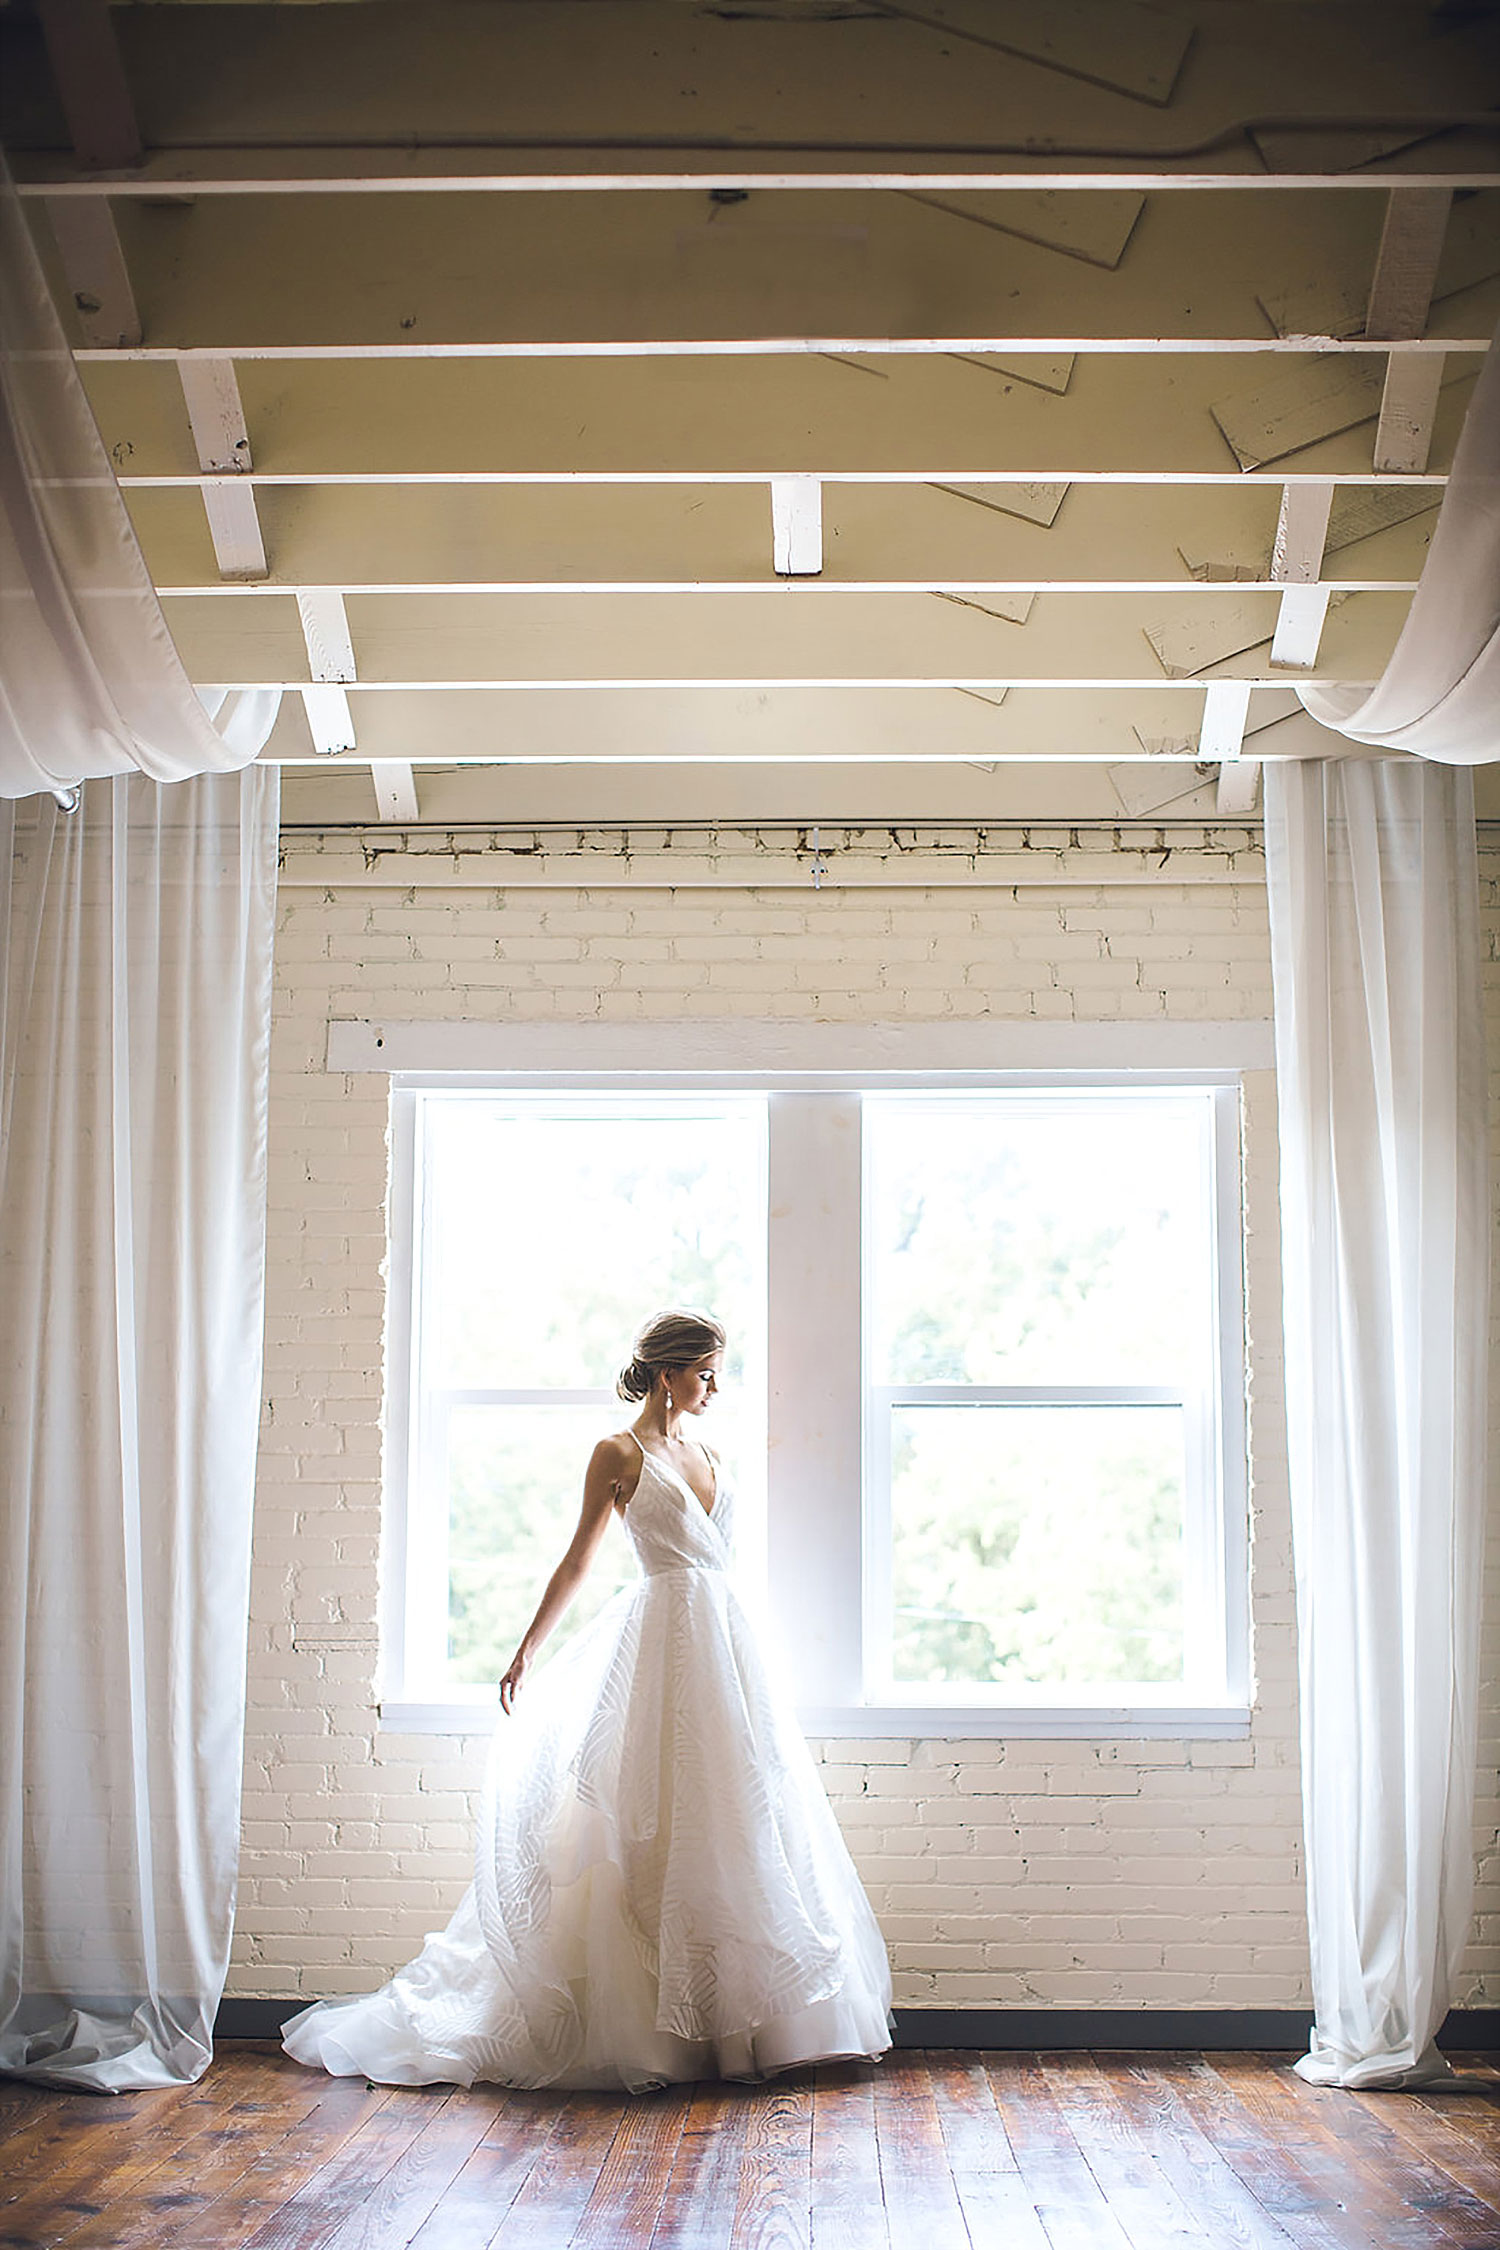 Brik Special Events Venue upstairs southern bride at window with white drapery